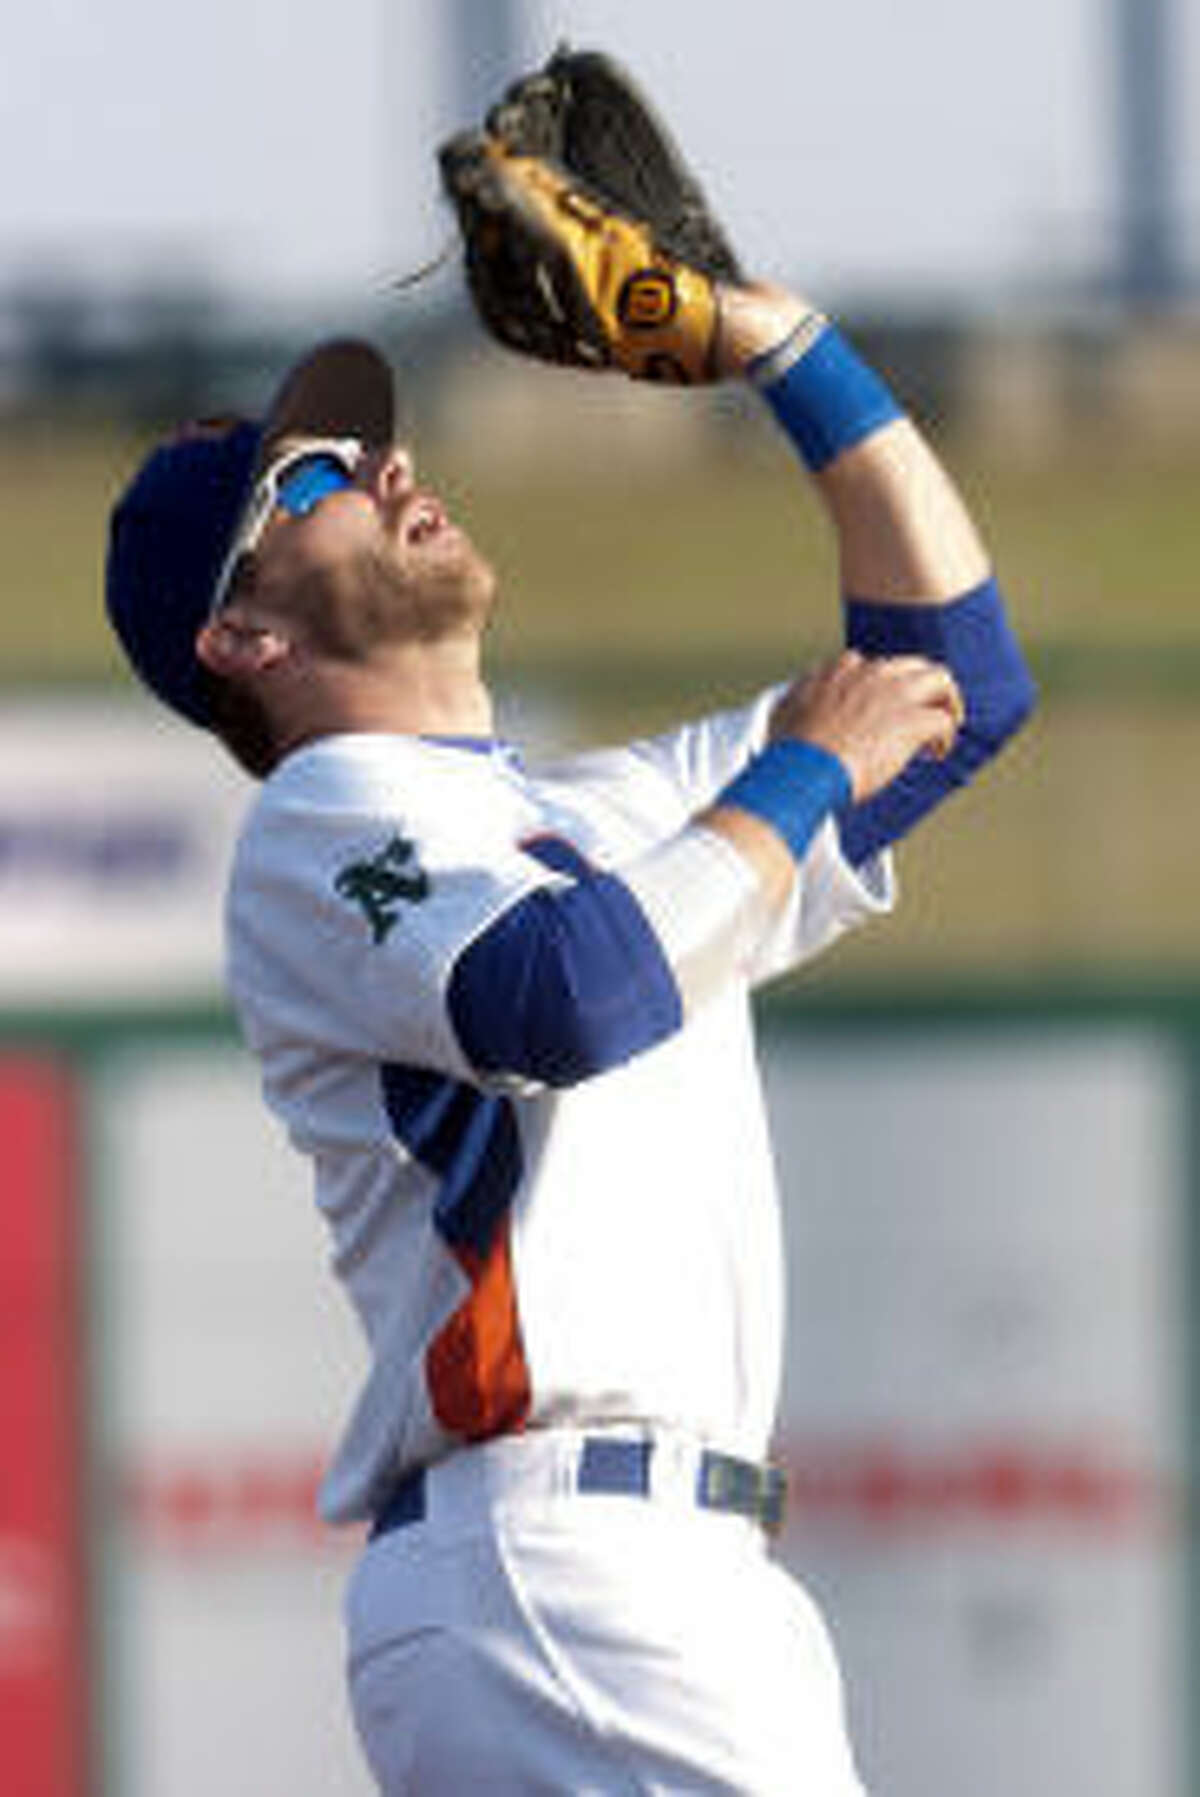 RockHounds game and Thirsty Thursday, 7 p.m. Thursday at Security Bank Ballpark. milb.com.